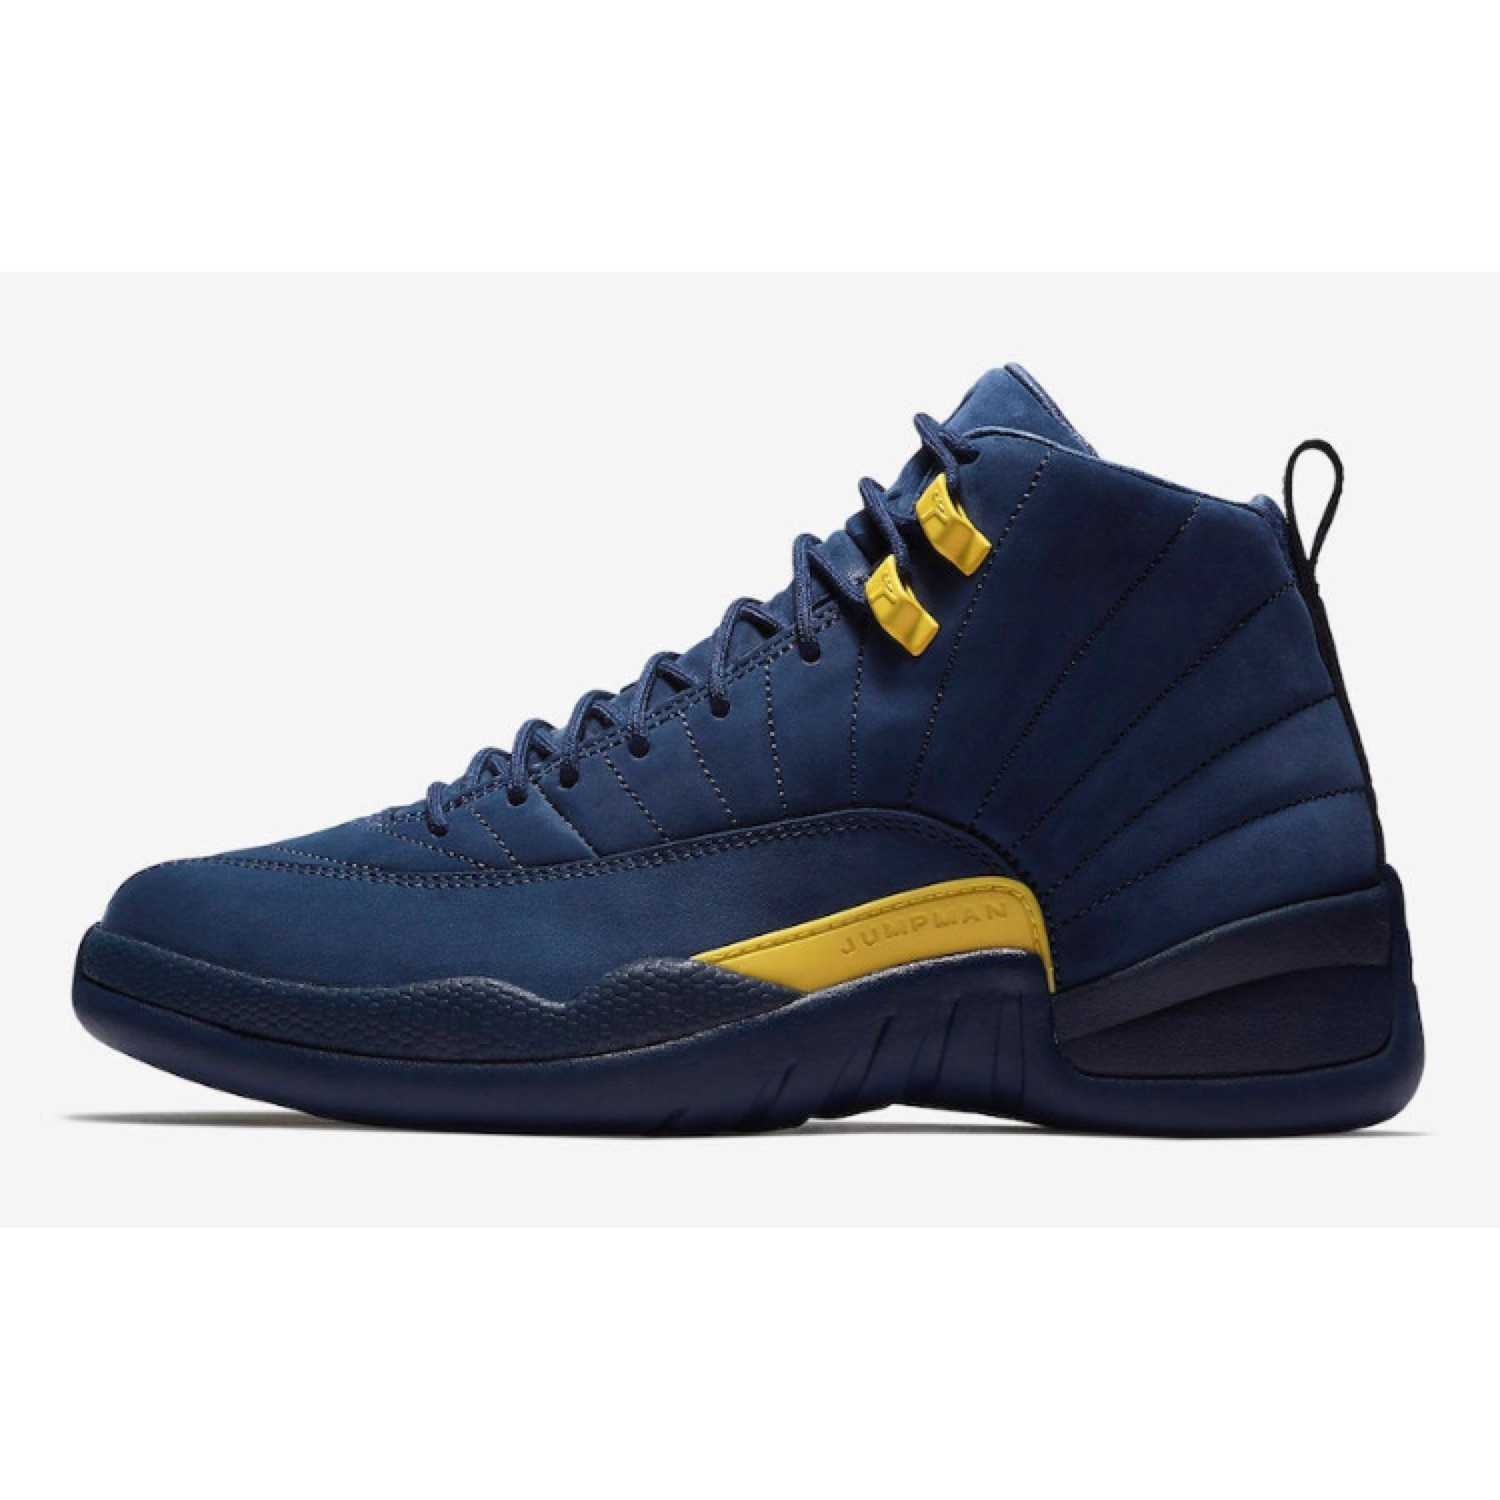 "quality design 6b95e 41f73 Nike Air Jordan Retro 12 ""Michigan"" Size 9.5"